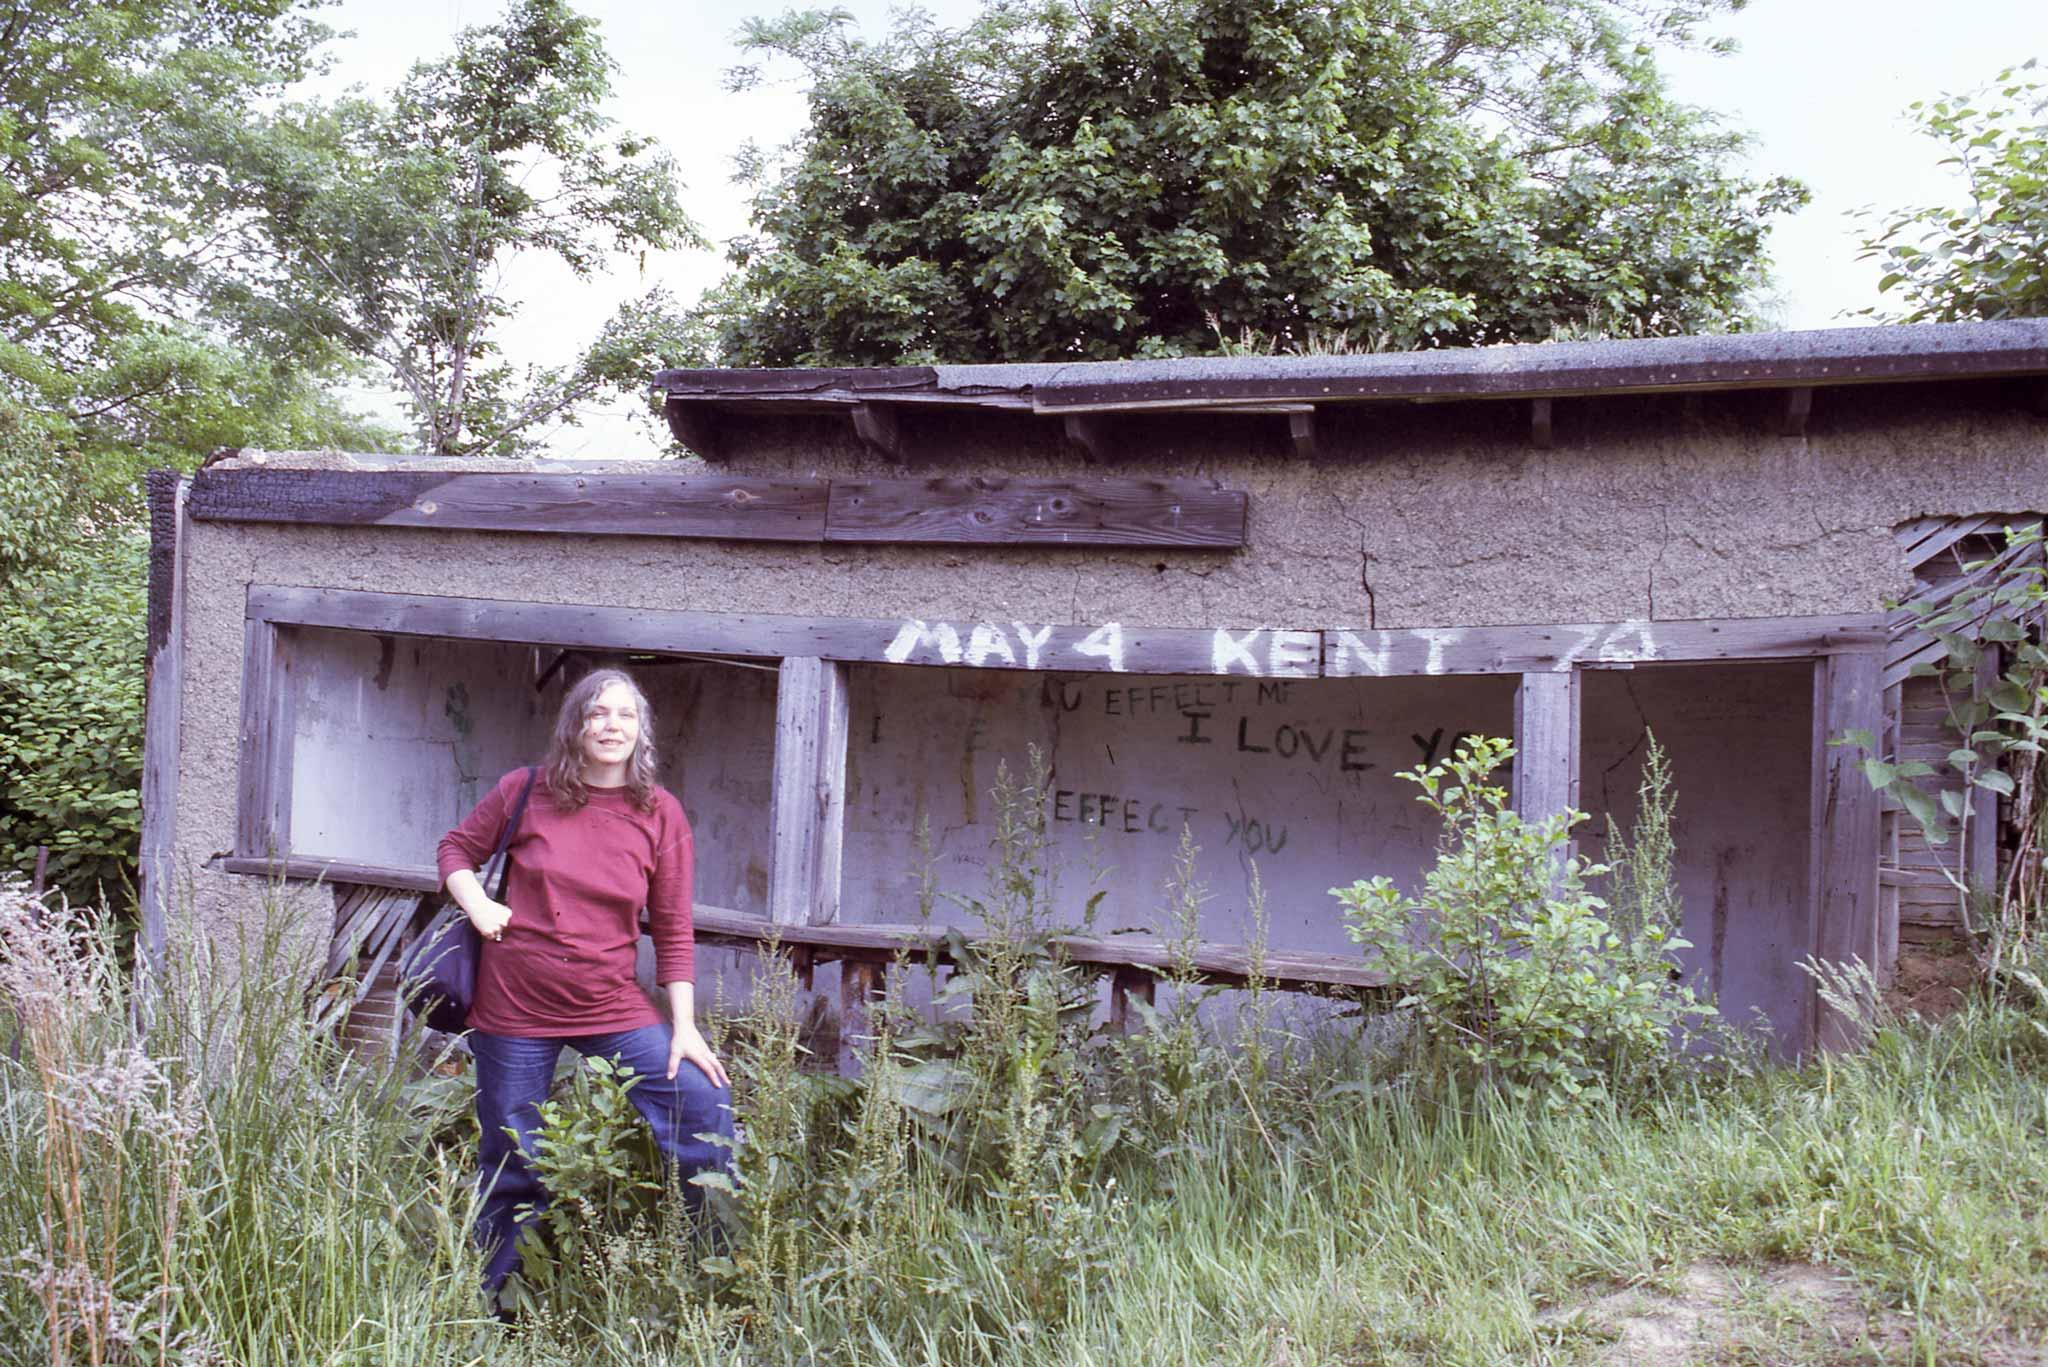 A woman stands next to a dilapidated woodshed with earth piled on the right wall and roof has been taken over by the surrounding plants